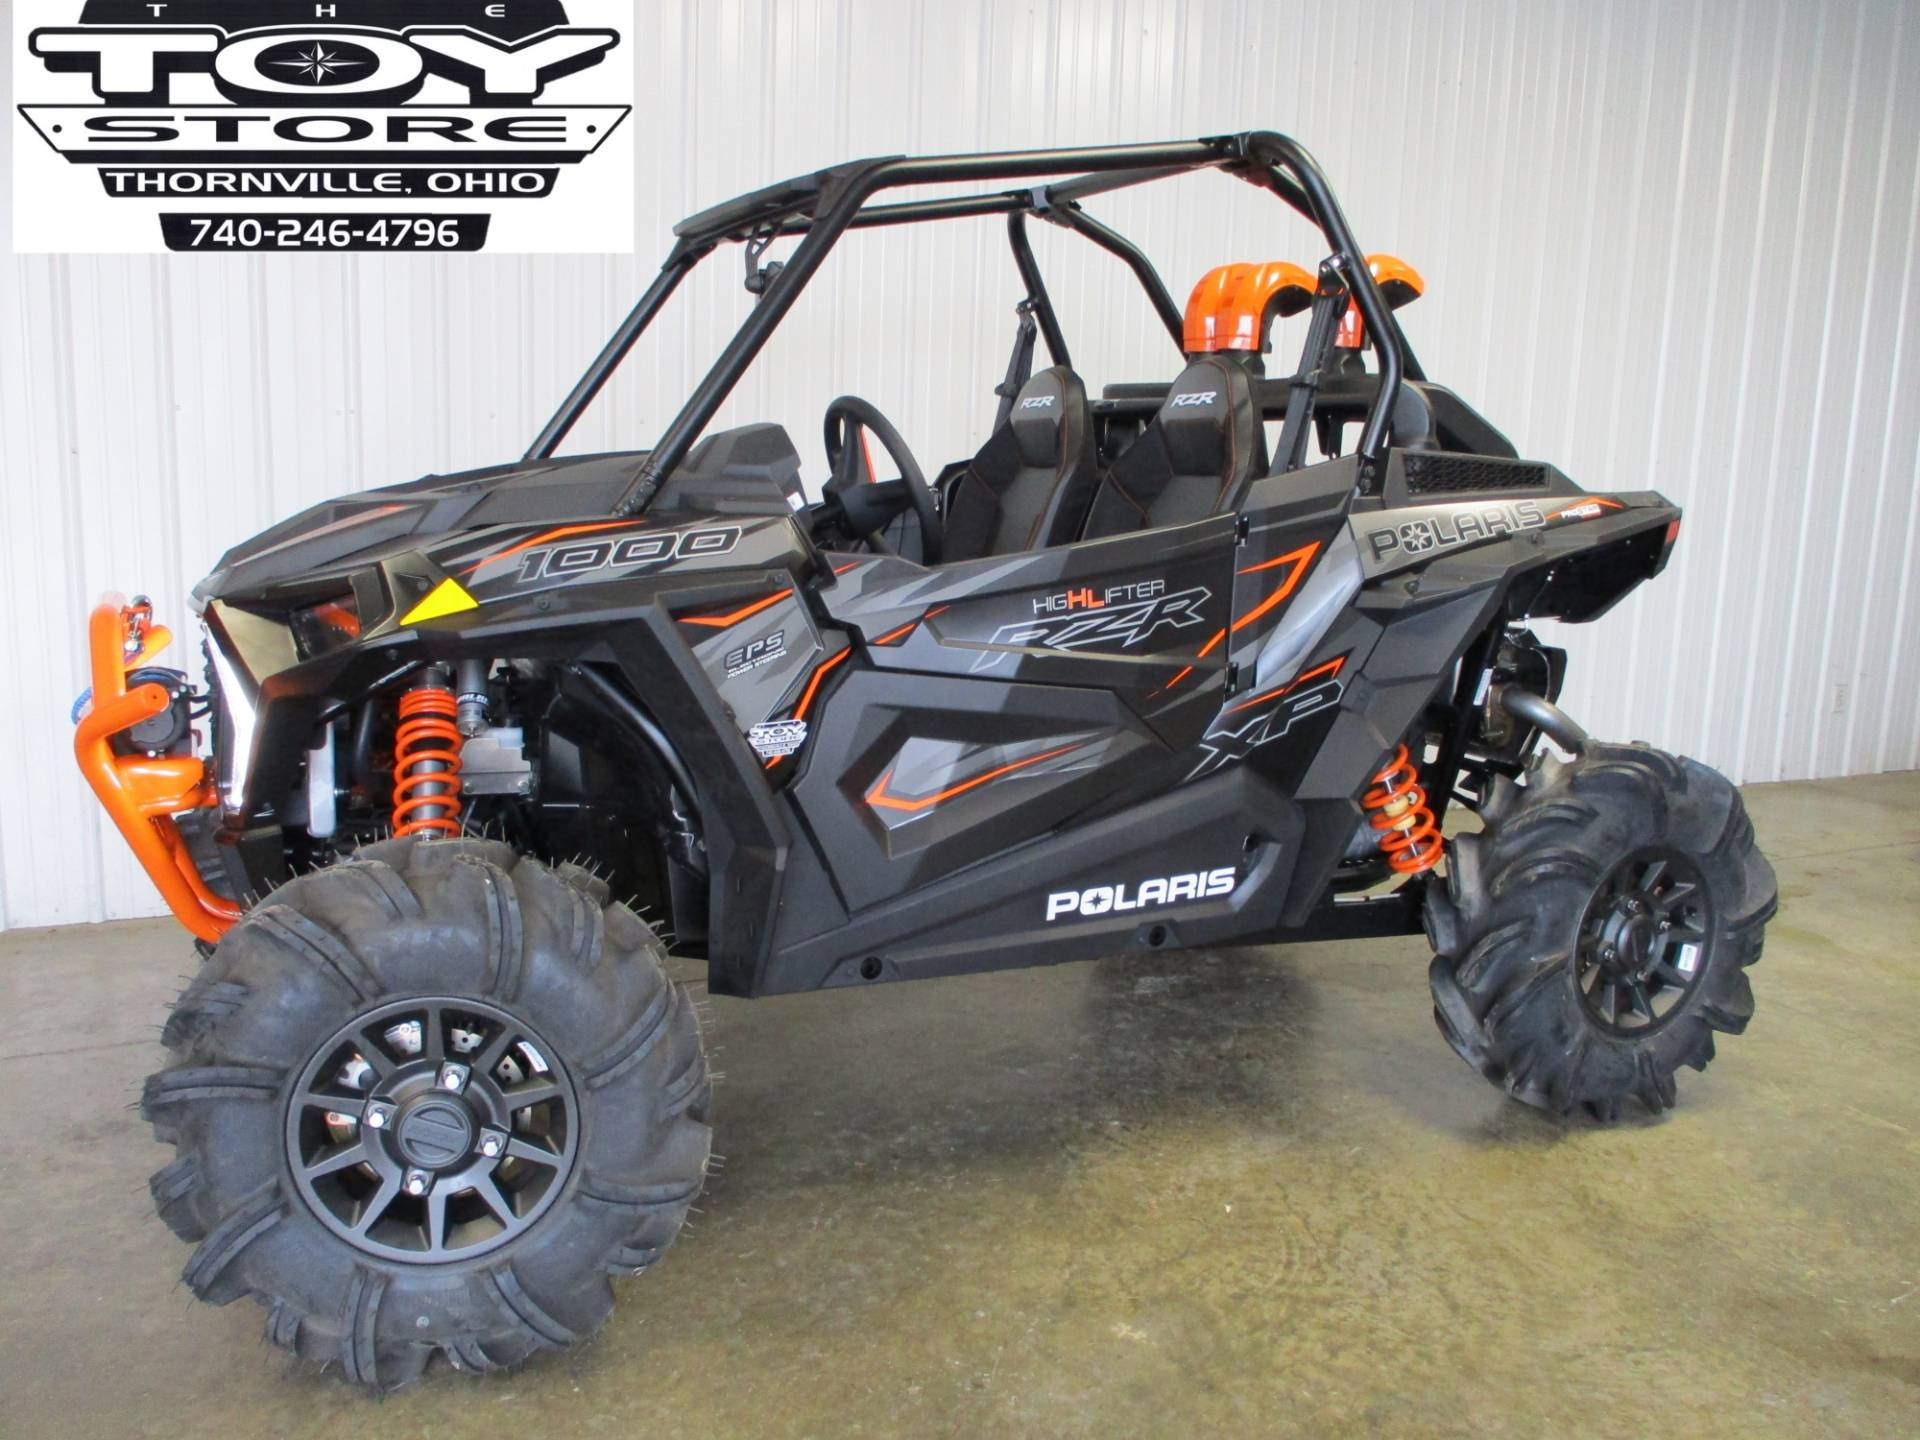 2019 Polaris RZR XP 1000 High Lifter in Thornville, Ohio